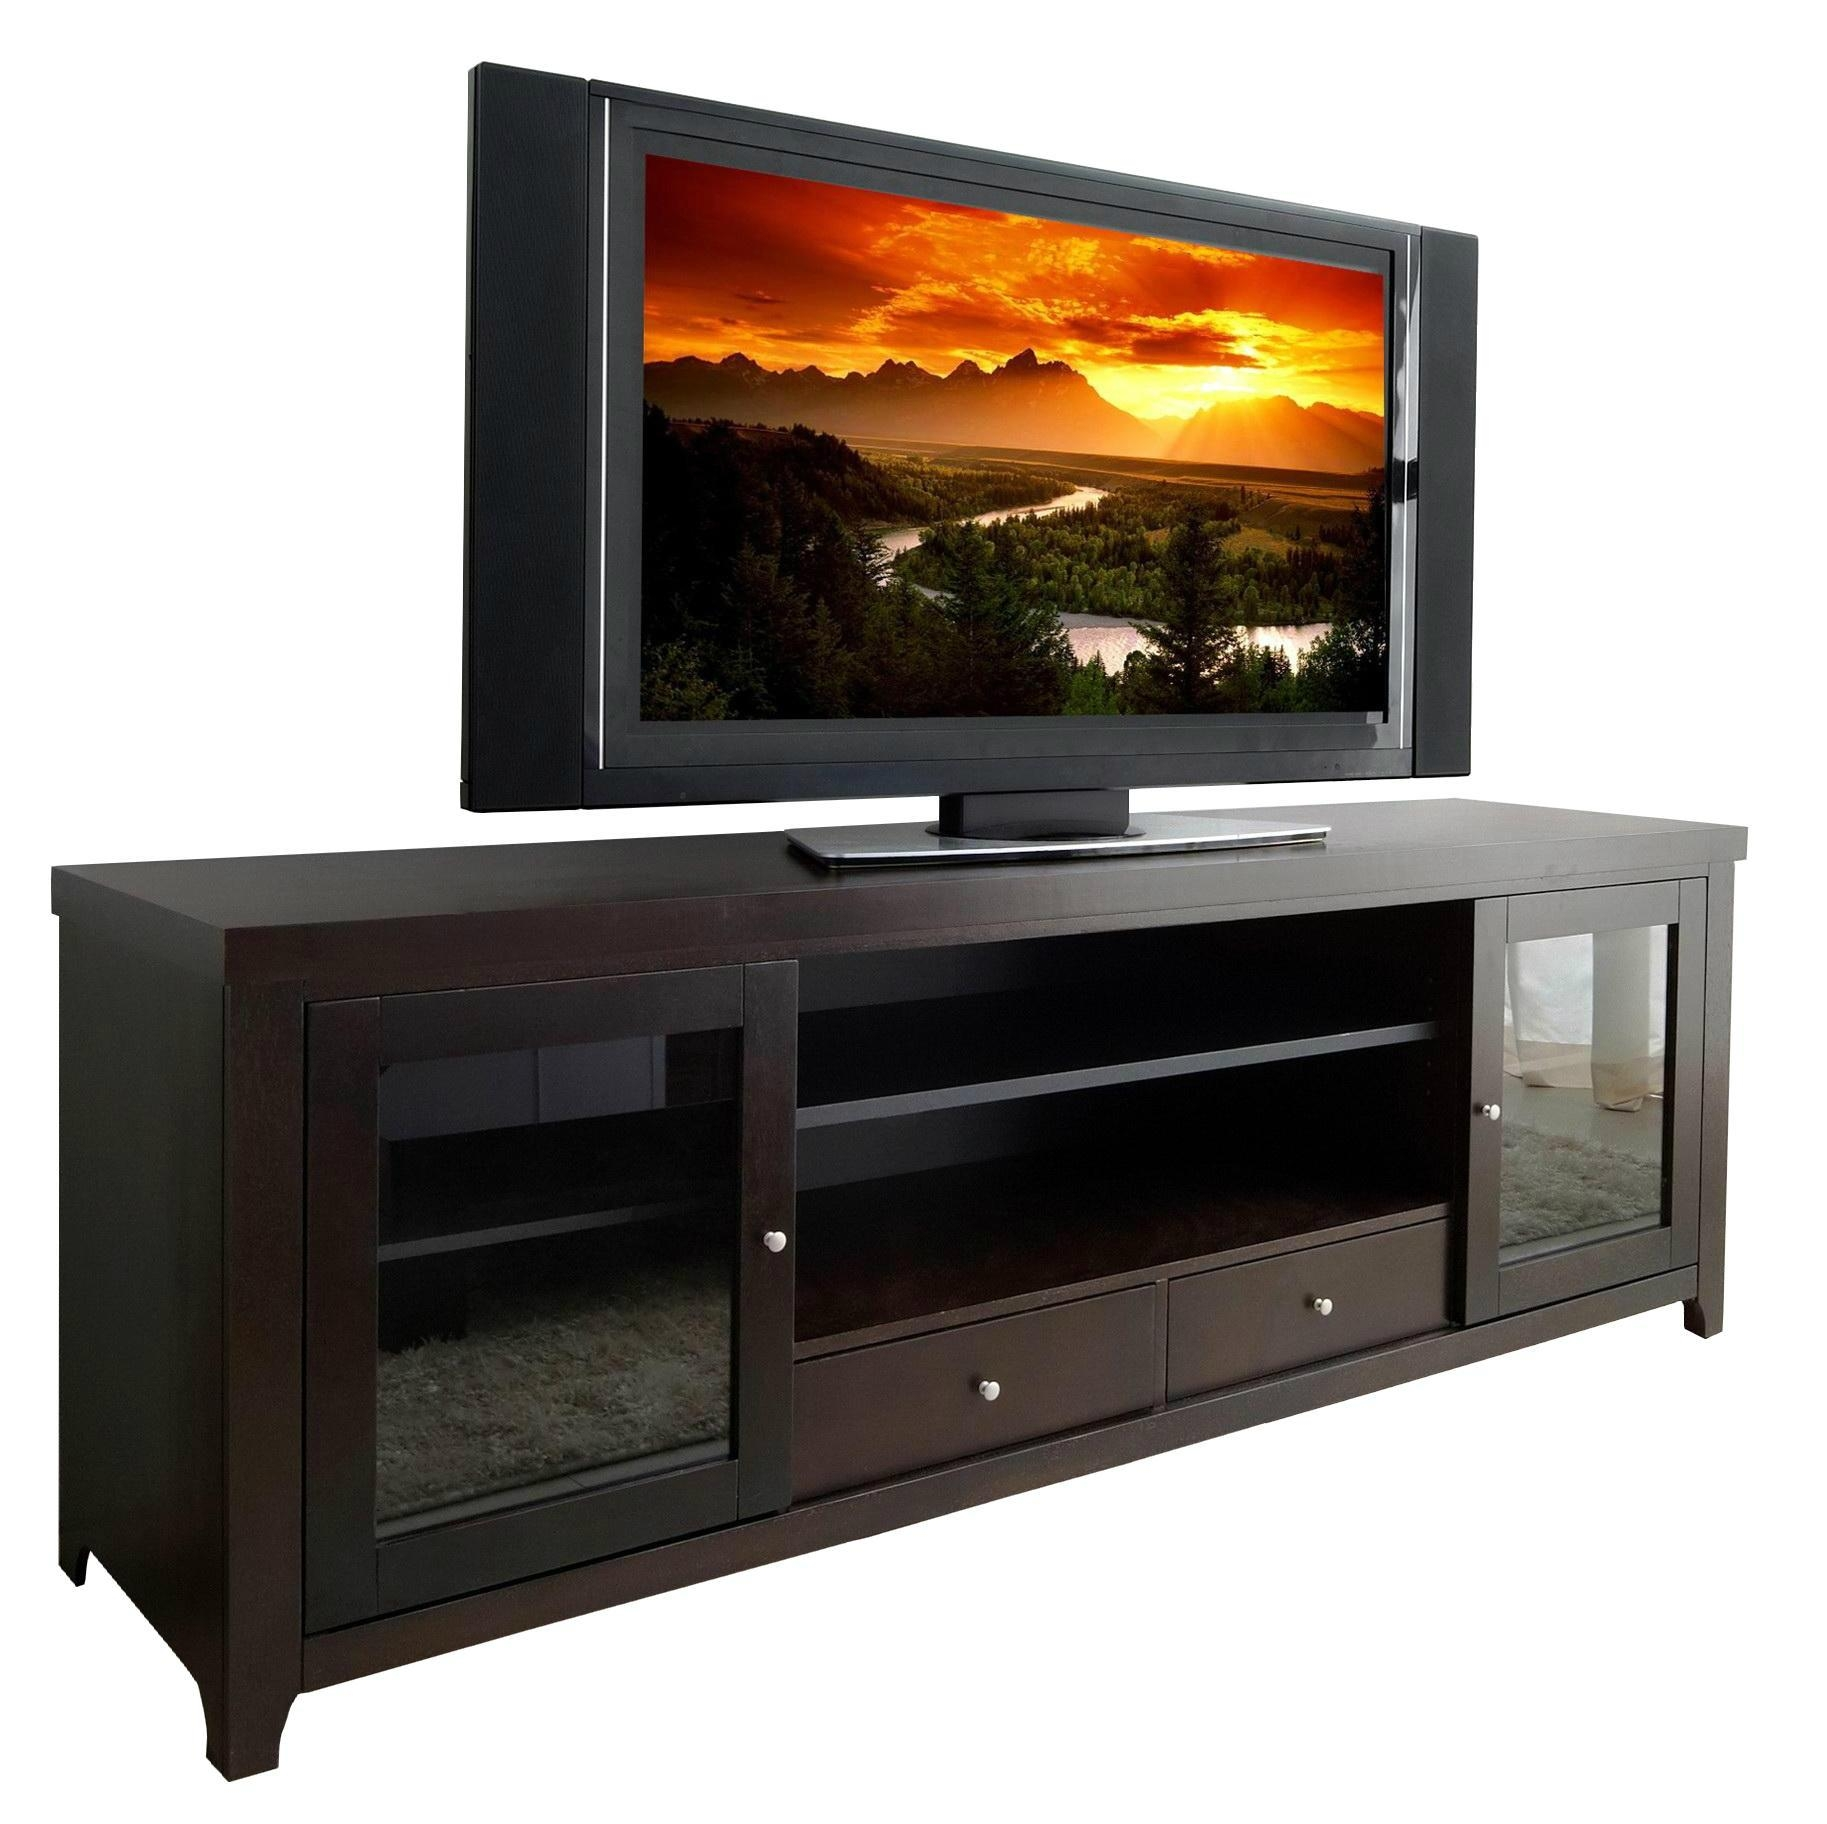 70 Inch Espresso Two Door TV Television Stands For Flat